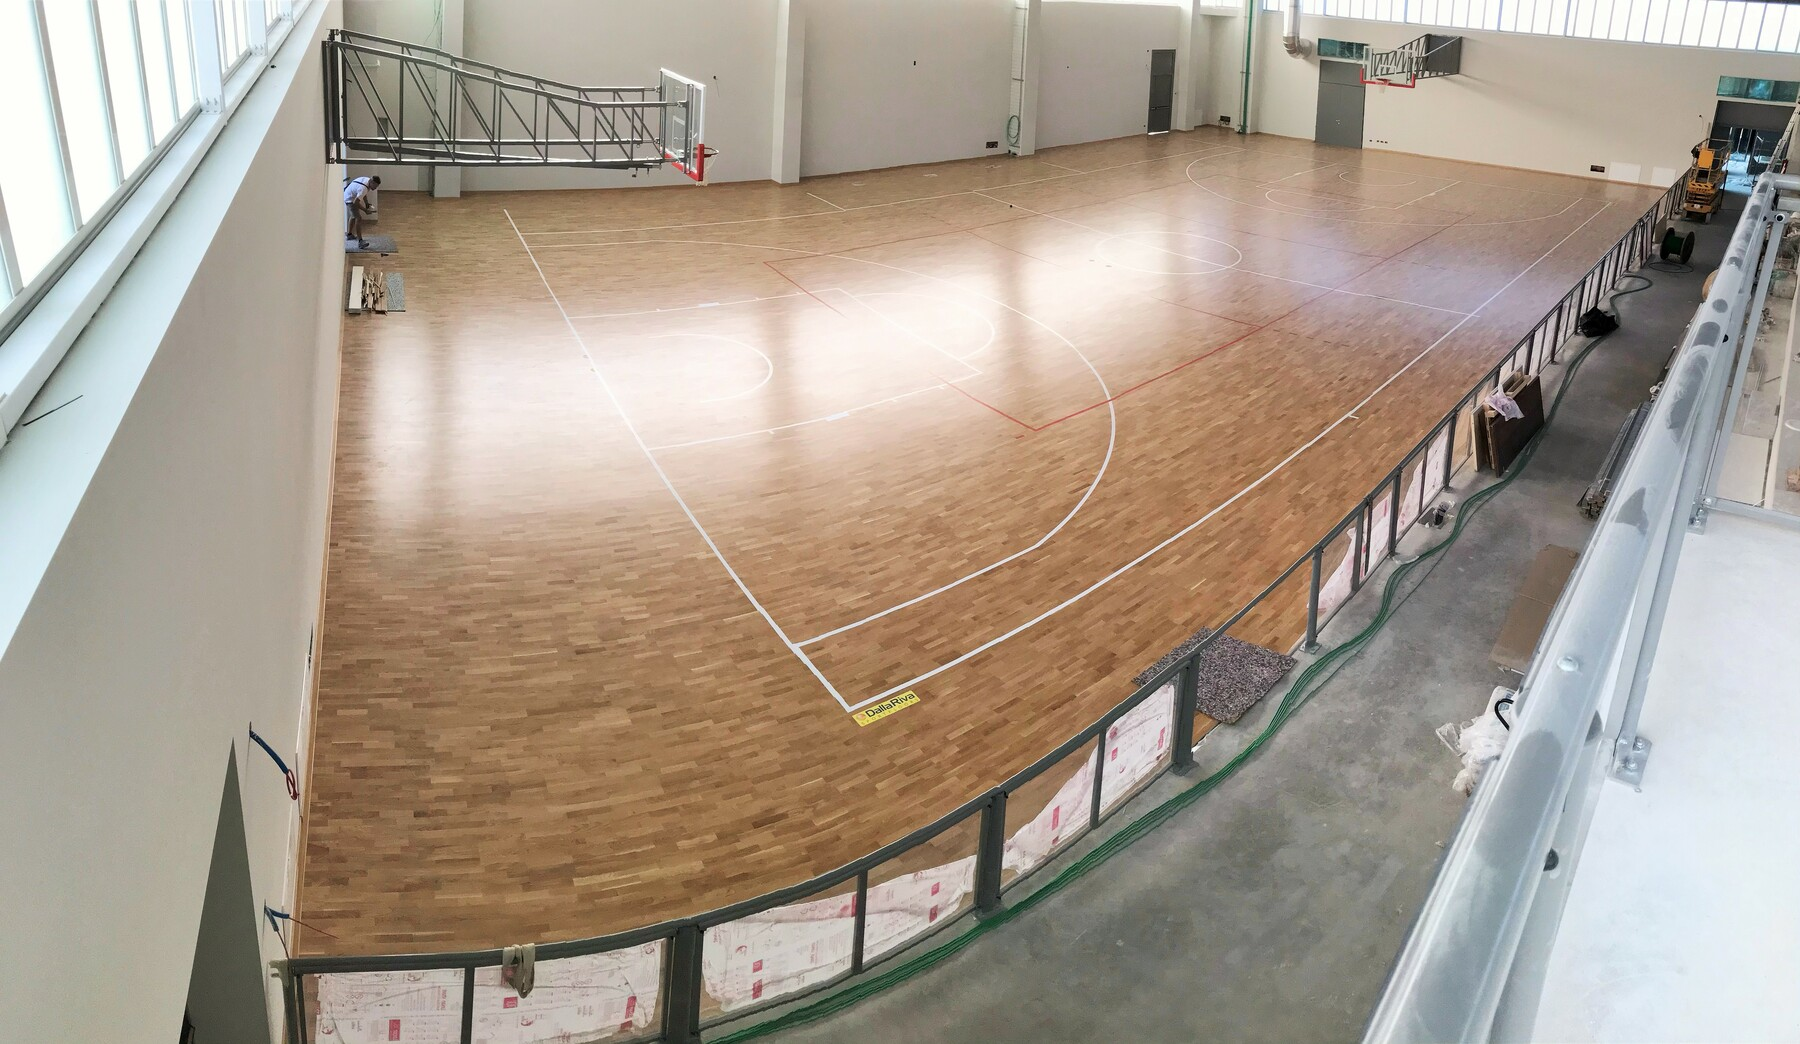 The new FIBA approved parquet